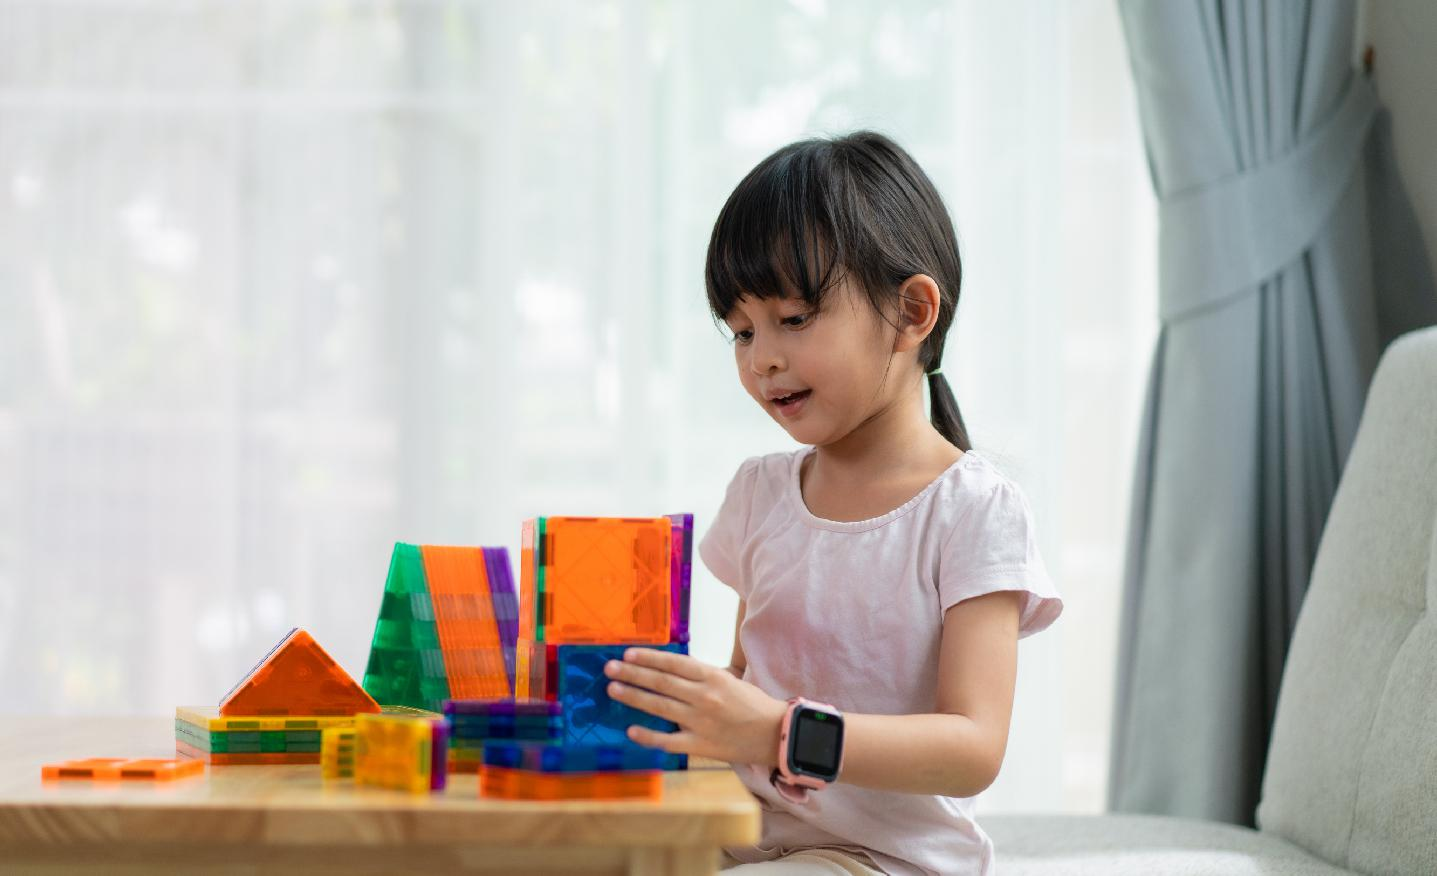 10 Interesting Facts About Learning And How You Can Help Instill A Love For Learning In Your Child